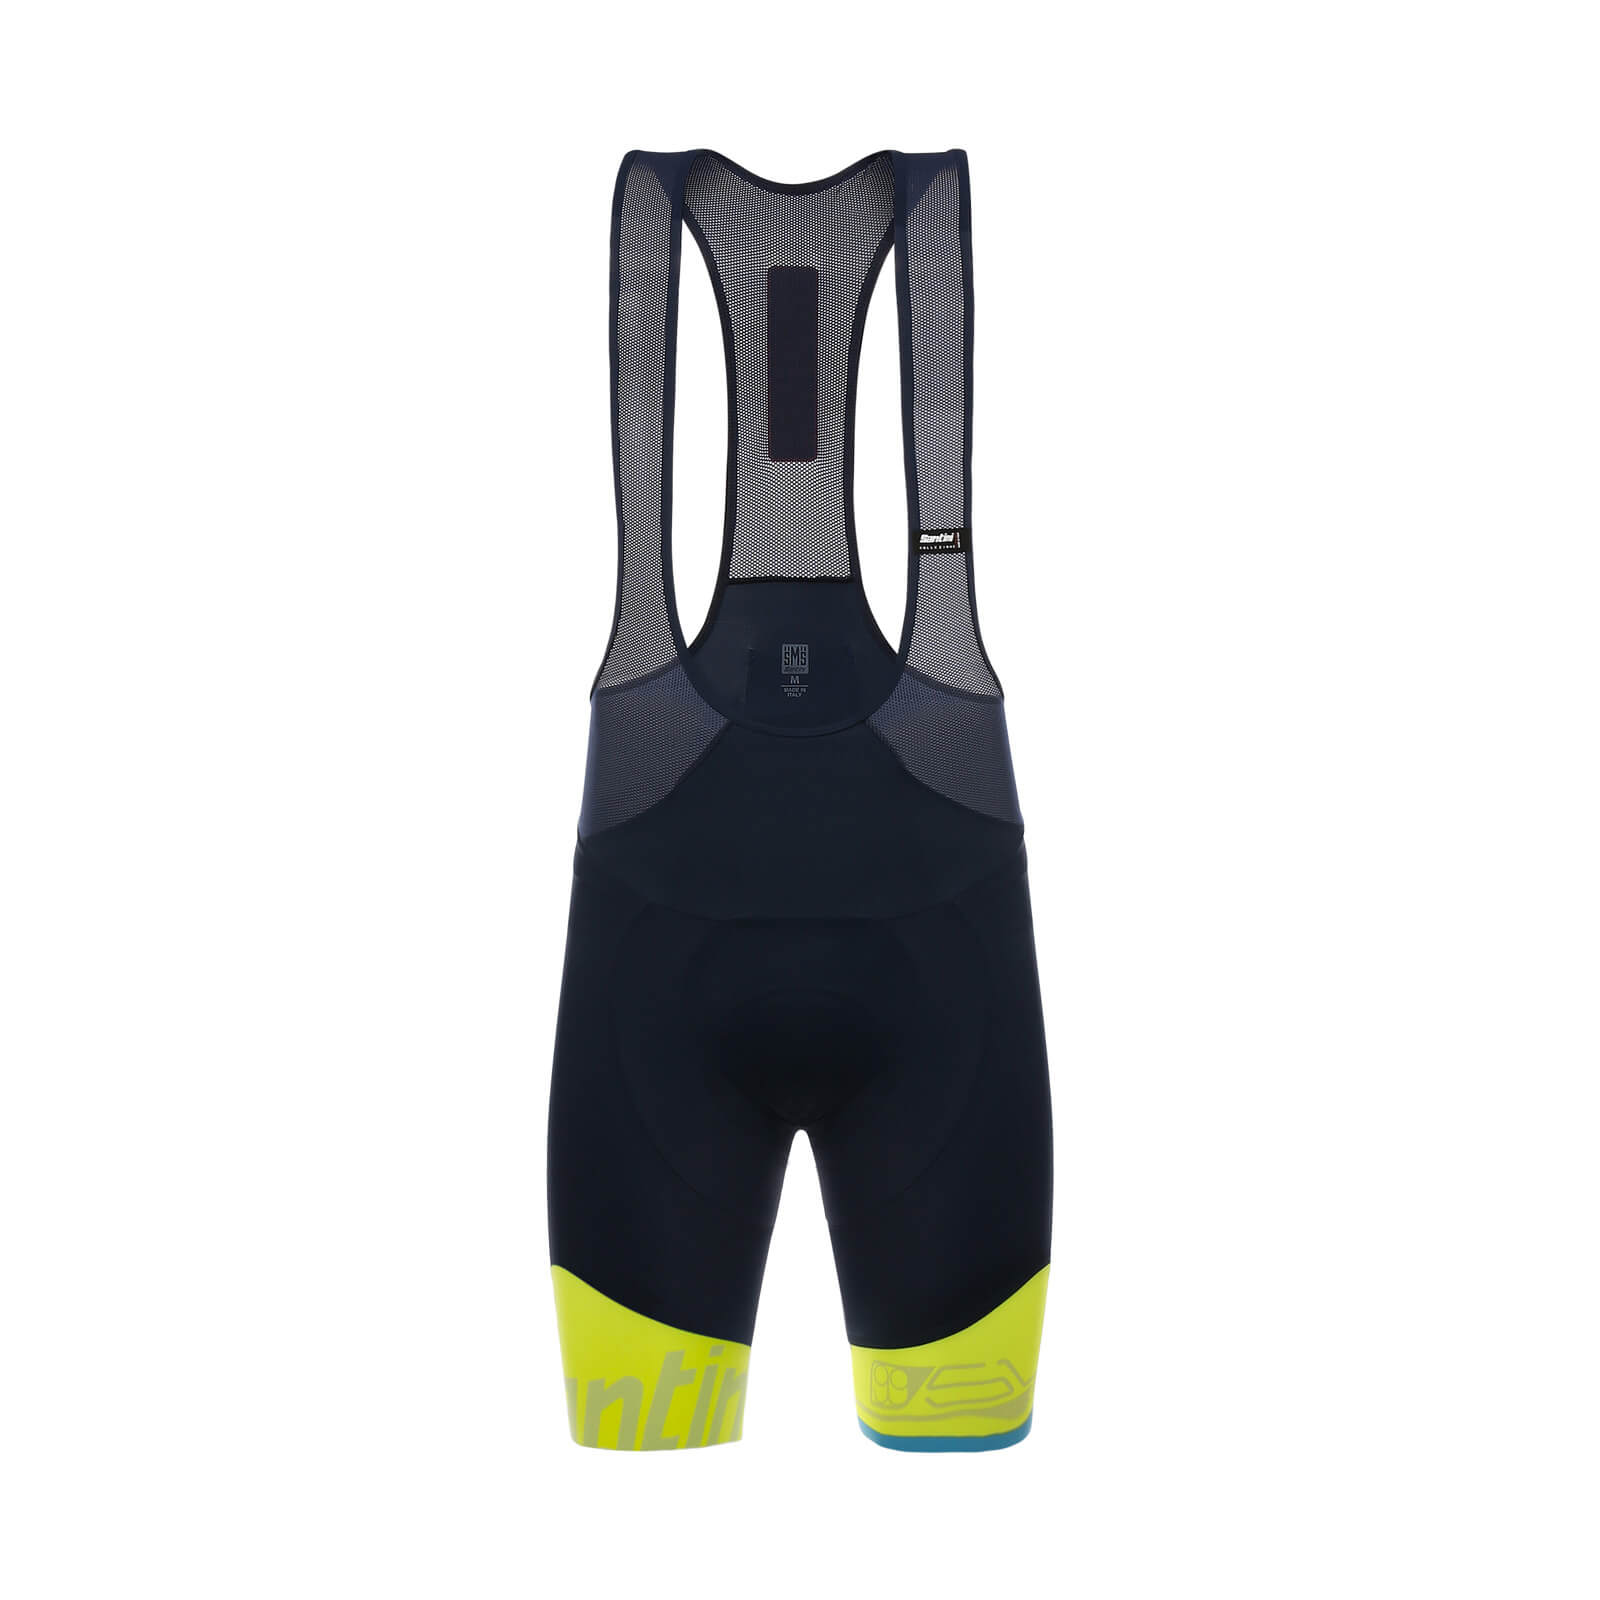 Santini Sleek 99 Aero Light Bib Shorts - Blue/Yellow